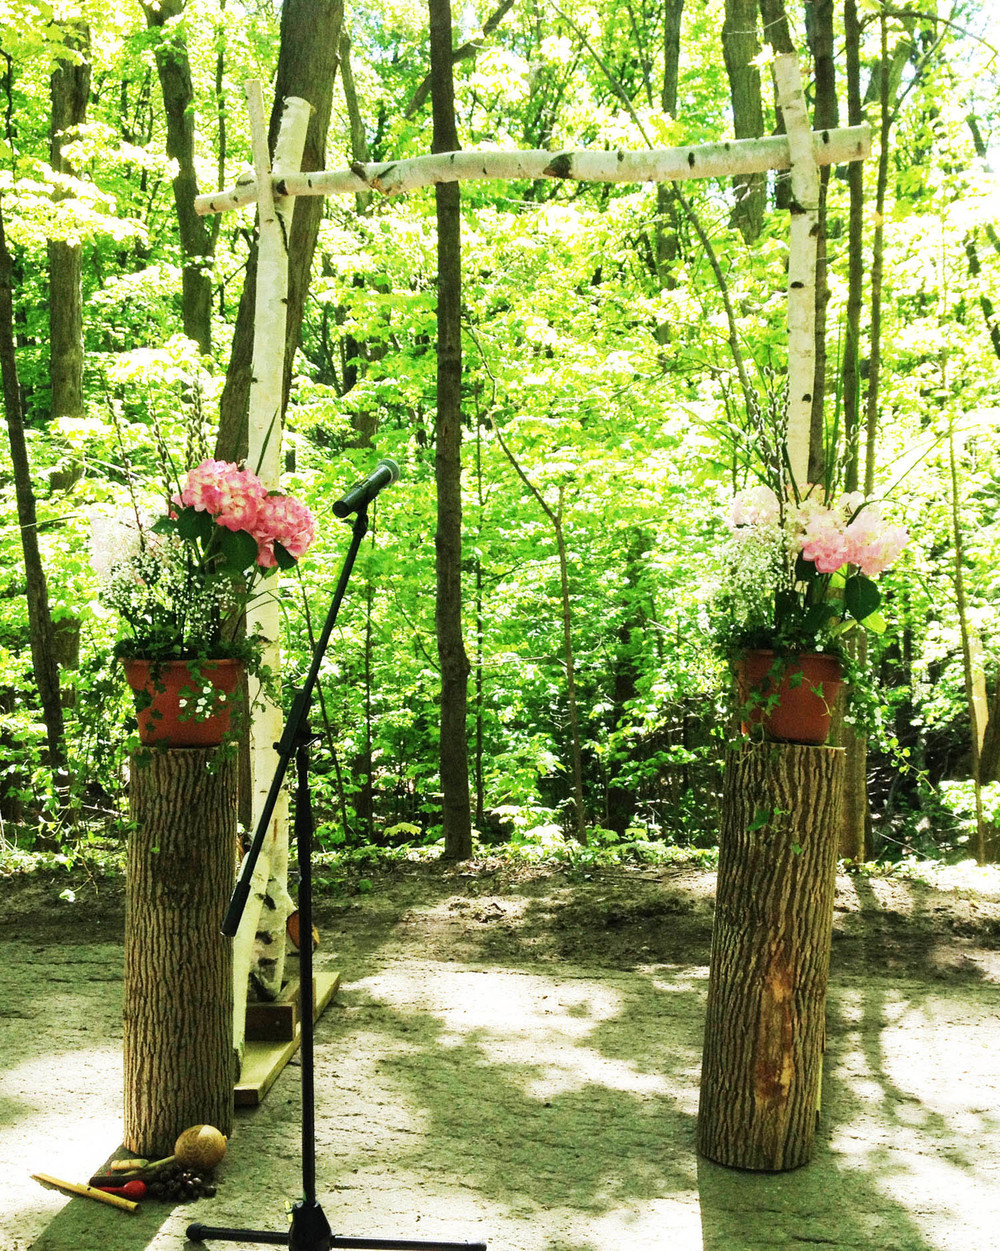 Del Vinyl Ceremony setup Kortright Center.JPG